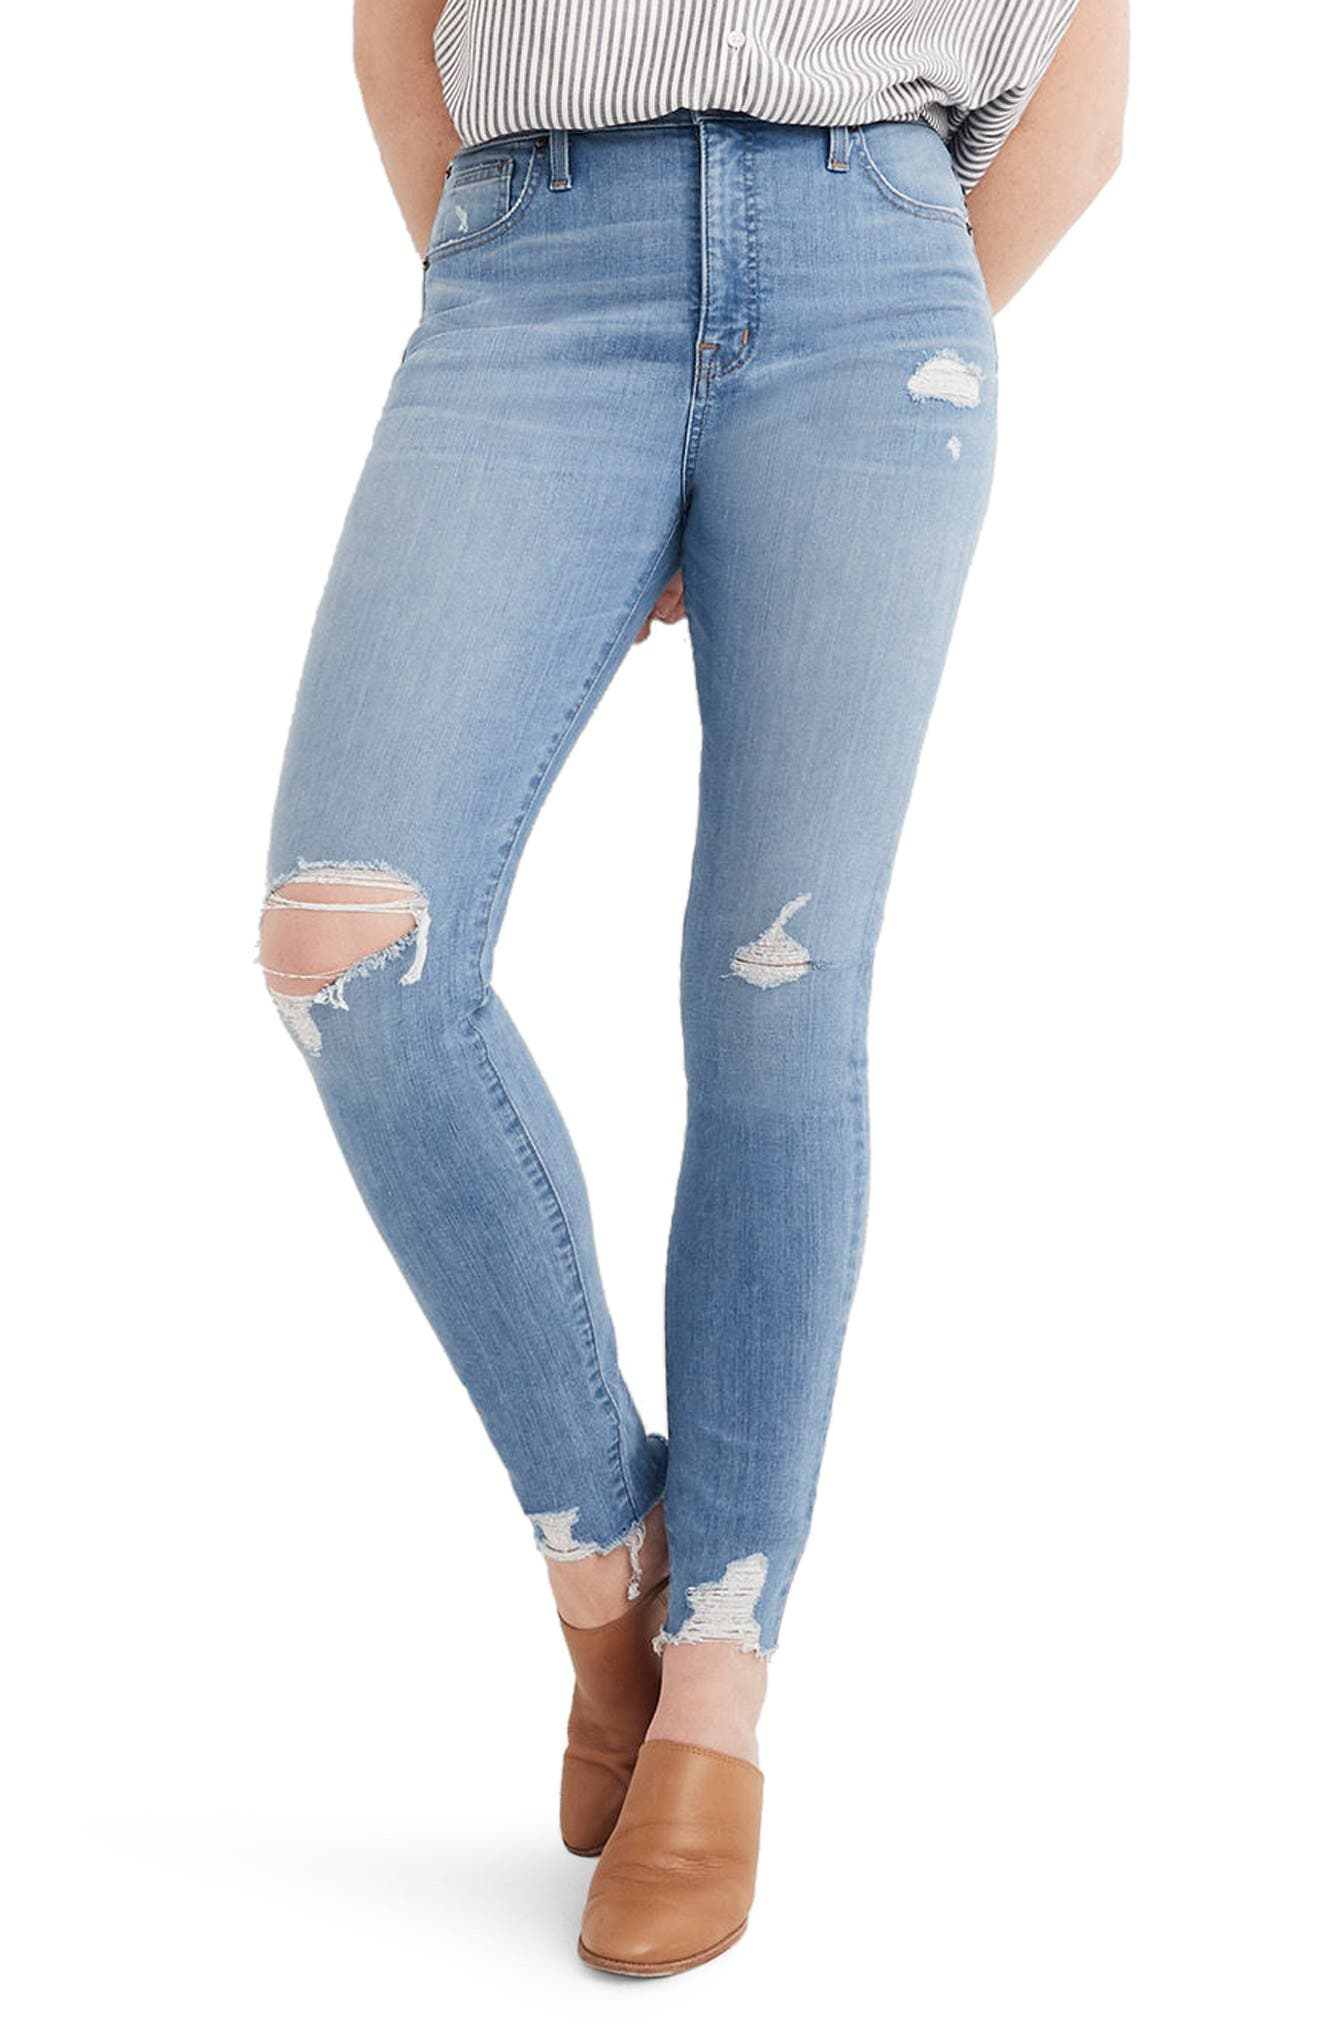 Madewell 9-Inch High Waist Skinny Jeans (Ontario Wash) (Short)